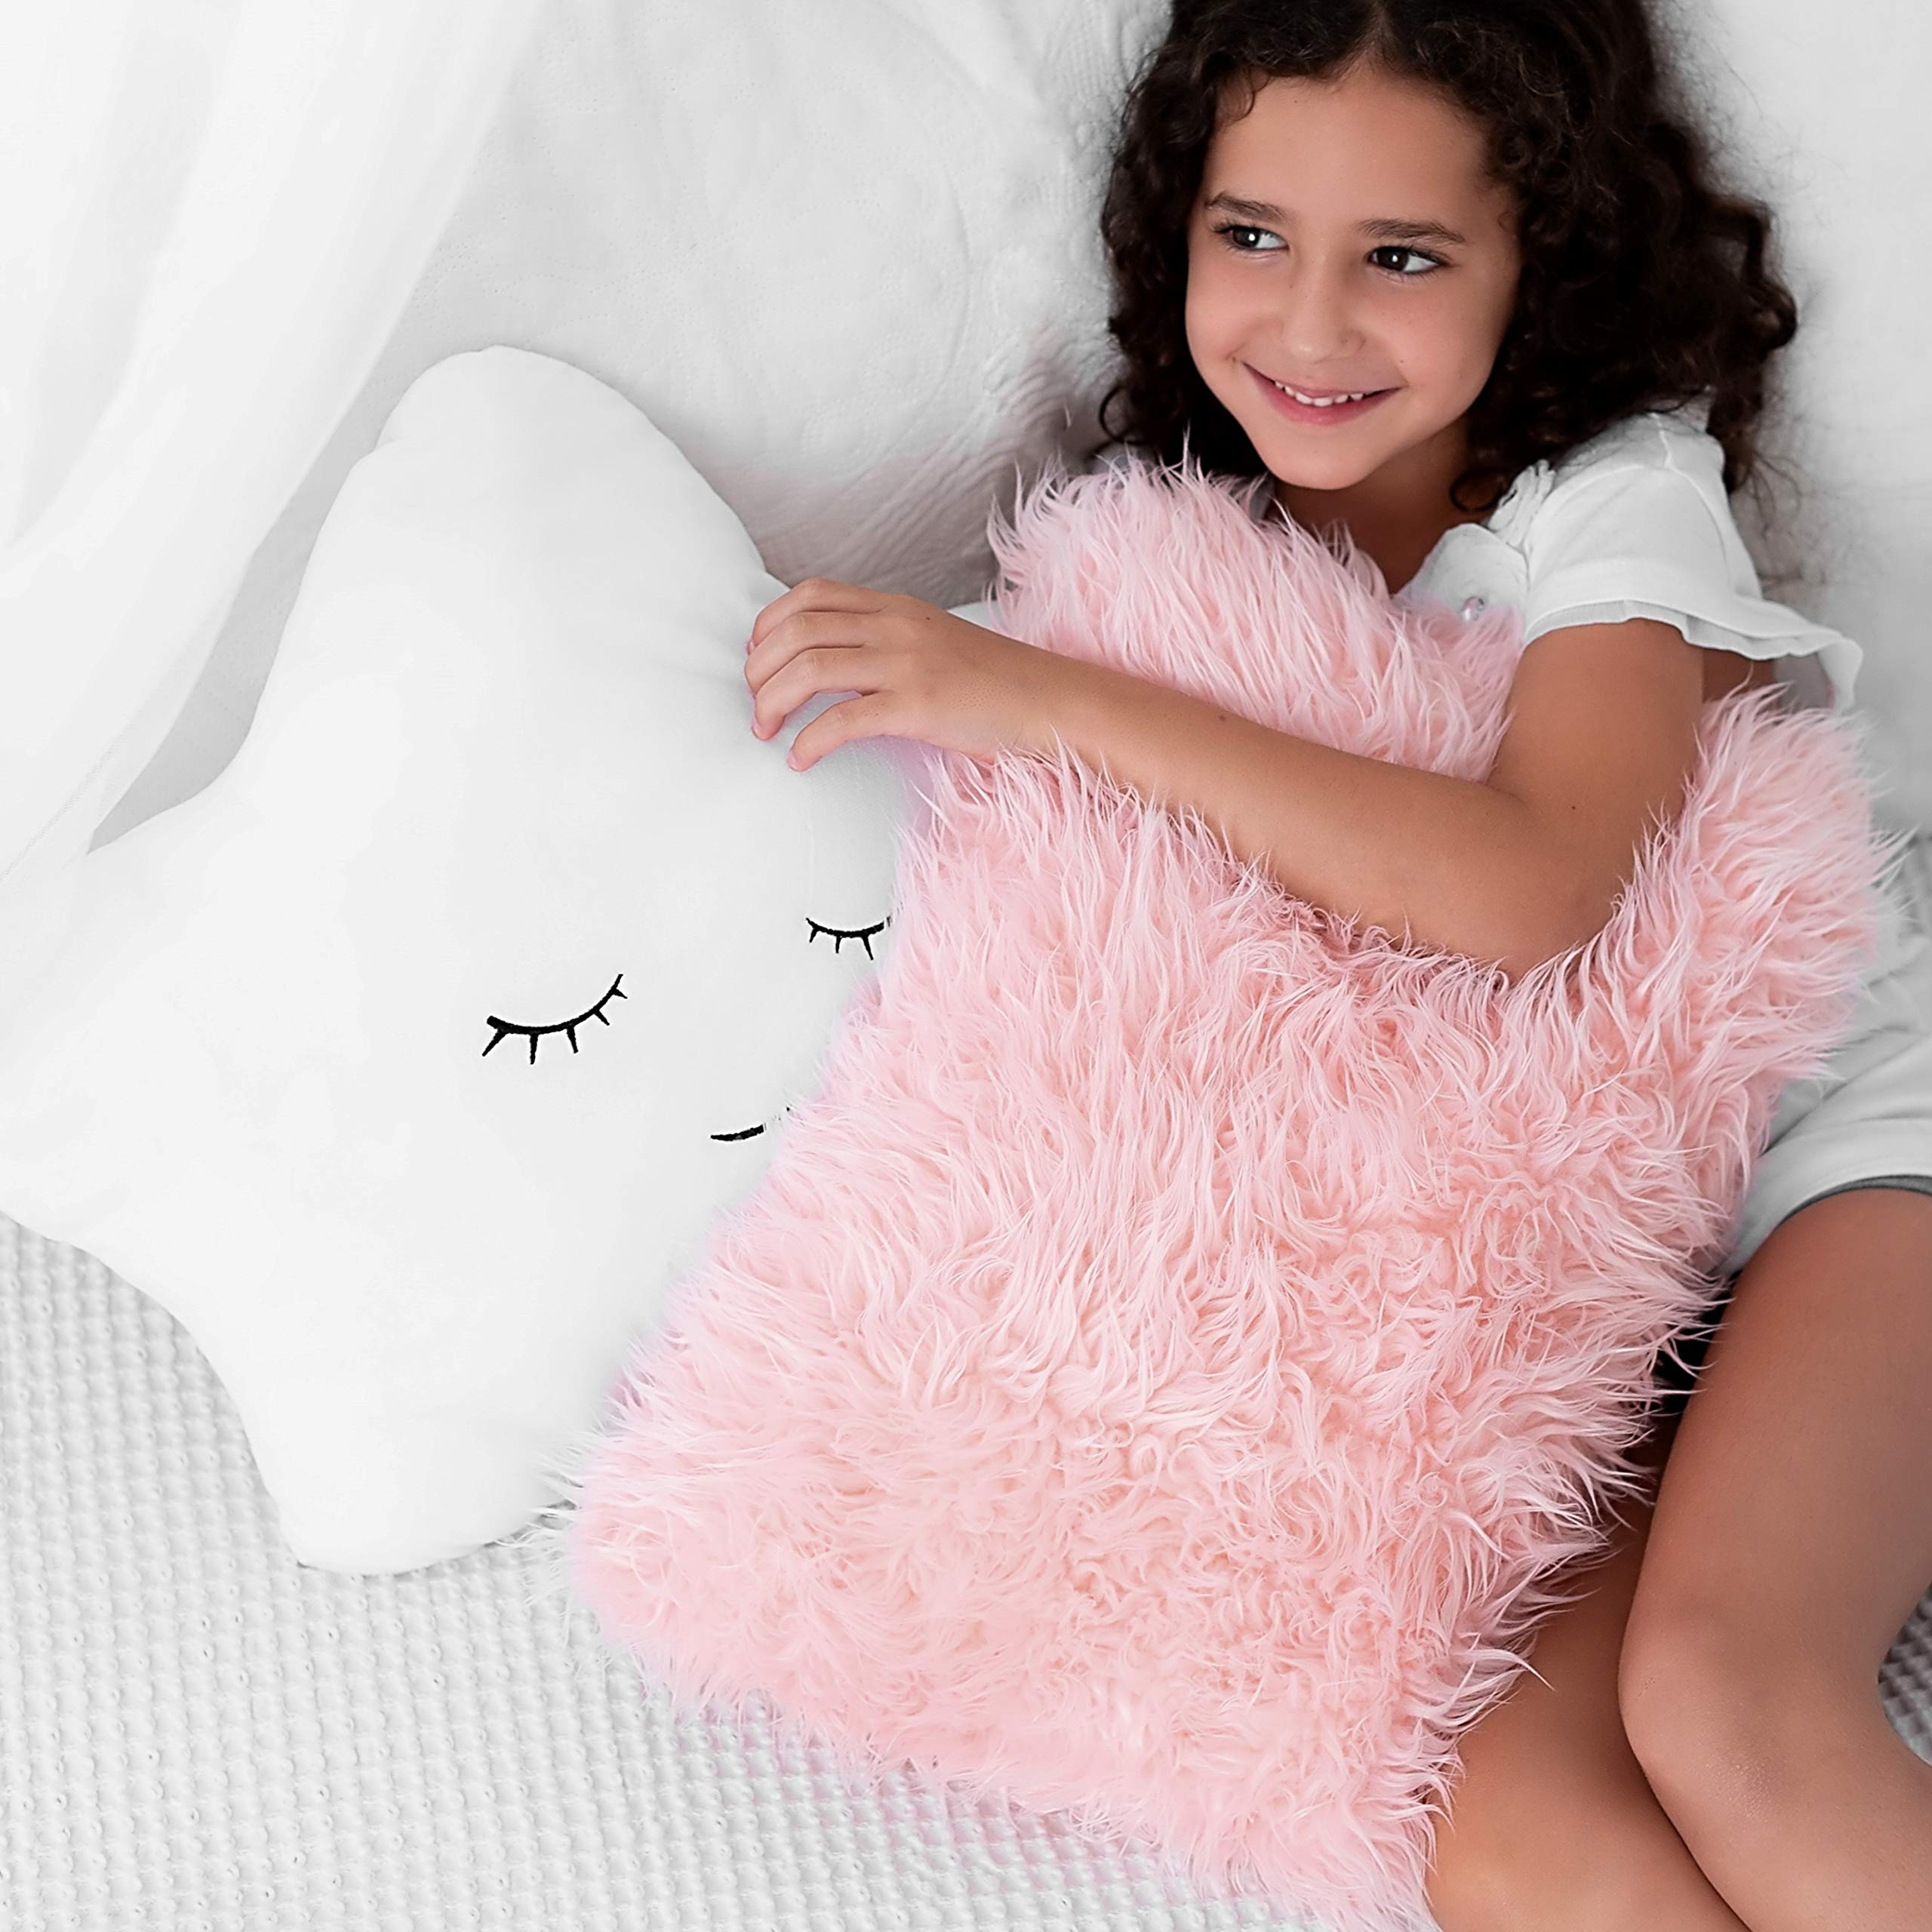 Set Of 2 Decorative Pillows For Girls Toddler Kids Room Star Pillow Fluffy White Embroidered And Furry Pink Faux Fur Pillow Soft And Plush Girls Pillows Throw Pillows For Kid S Bedroom